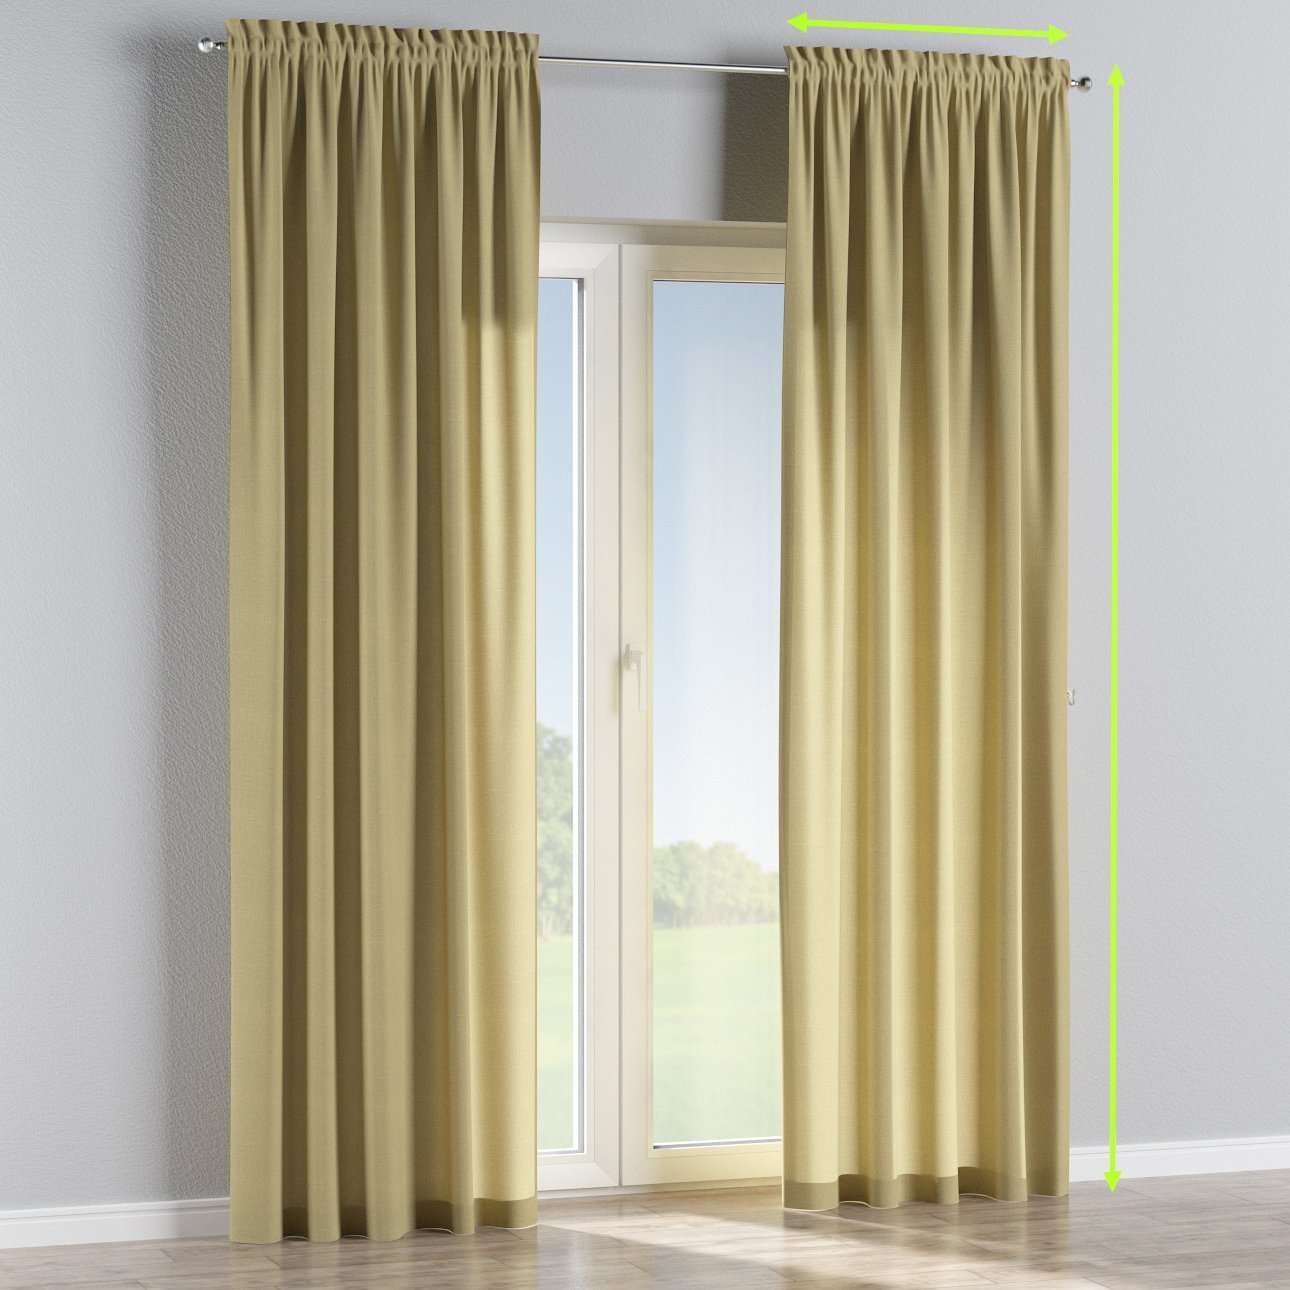 Slot and frill lined curtains in collection Cardiff, fabric: 136-22